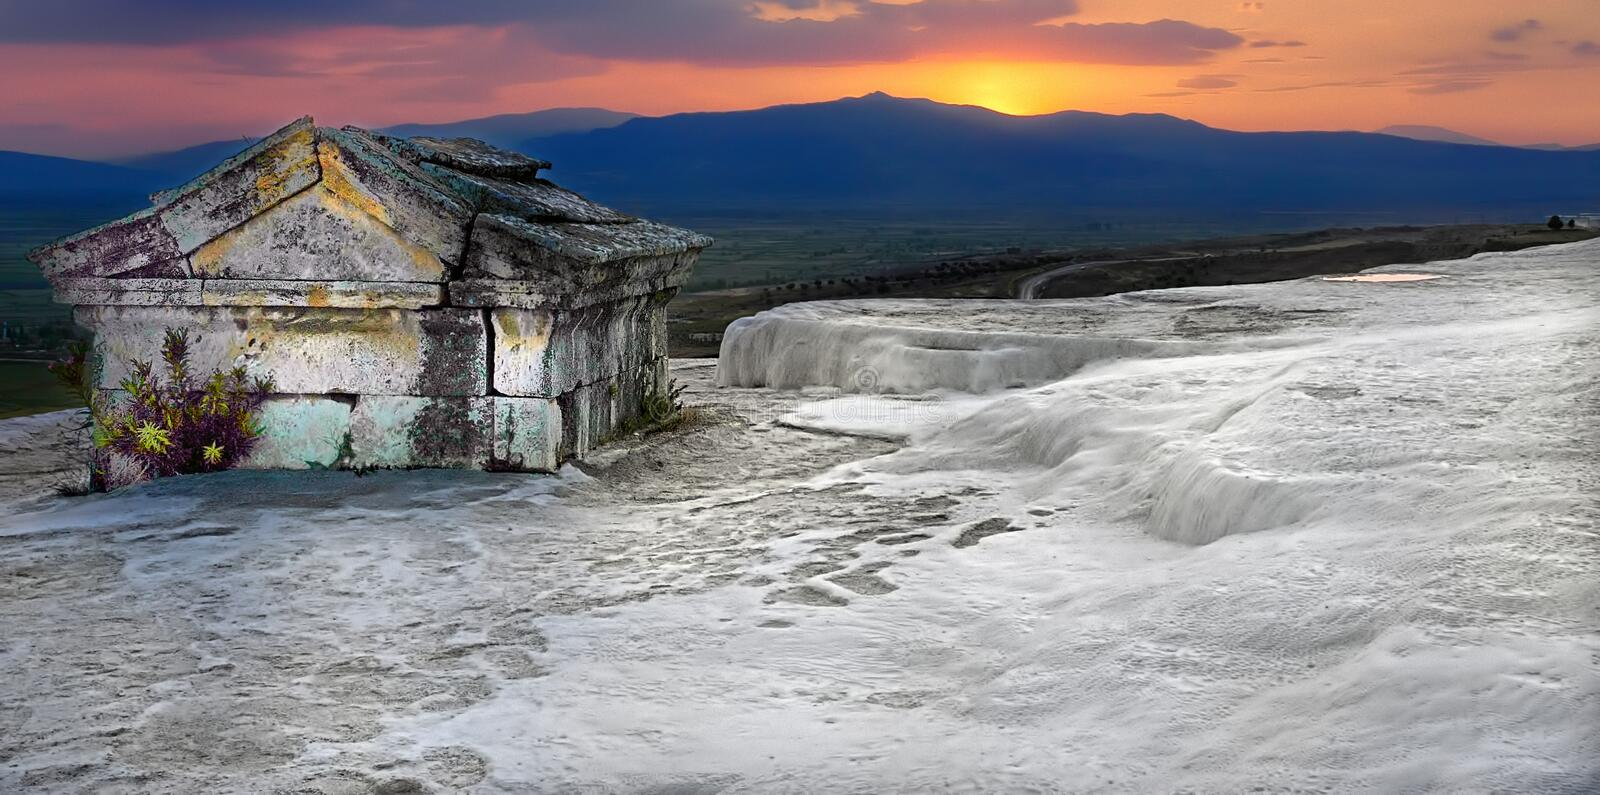 Hierapolis-Pamukkale. Deriving from springs in a cliff almost 200 m high overlooking the plain, calcite-laden waters have created at Pamukkale & x28;Cotton royalty free stock images